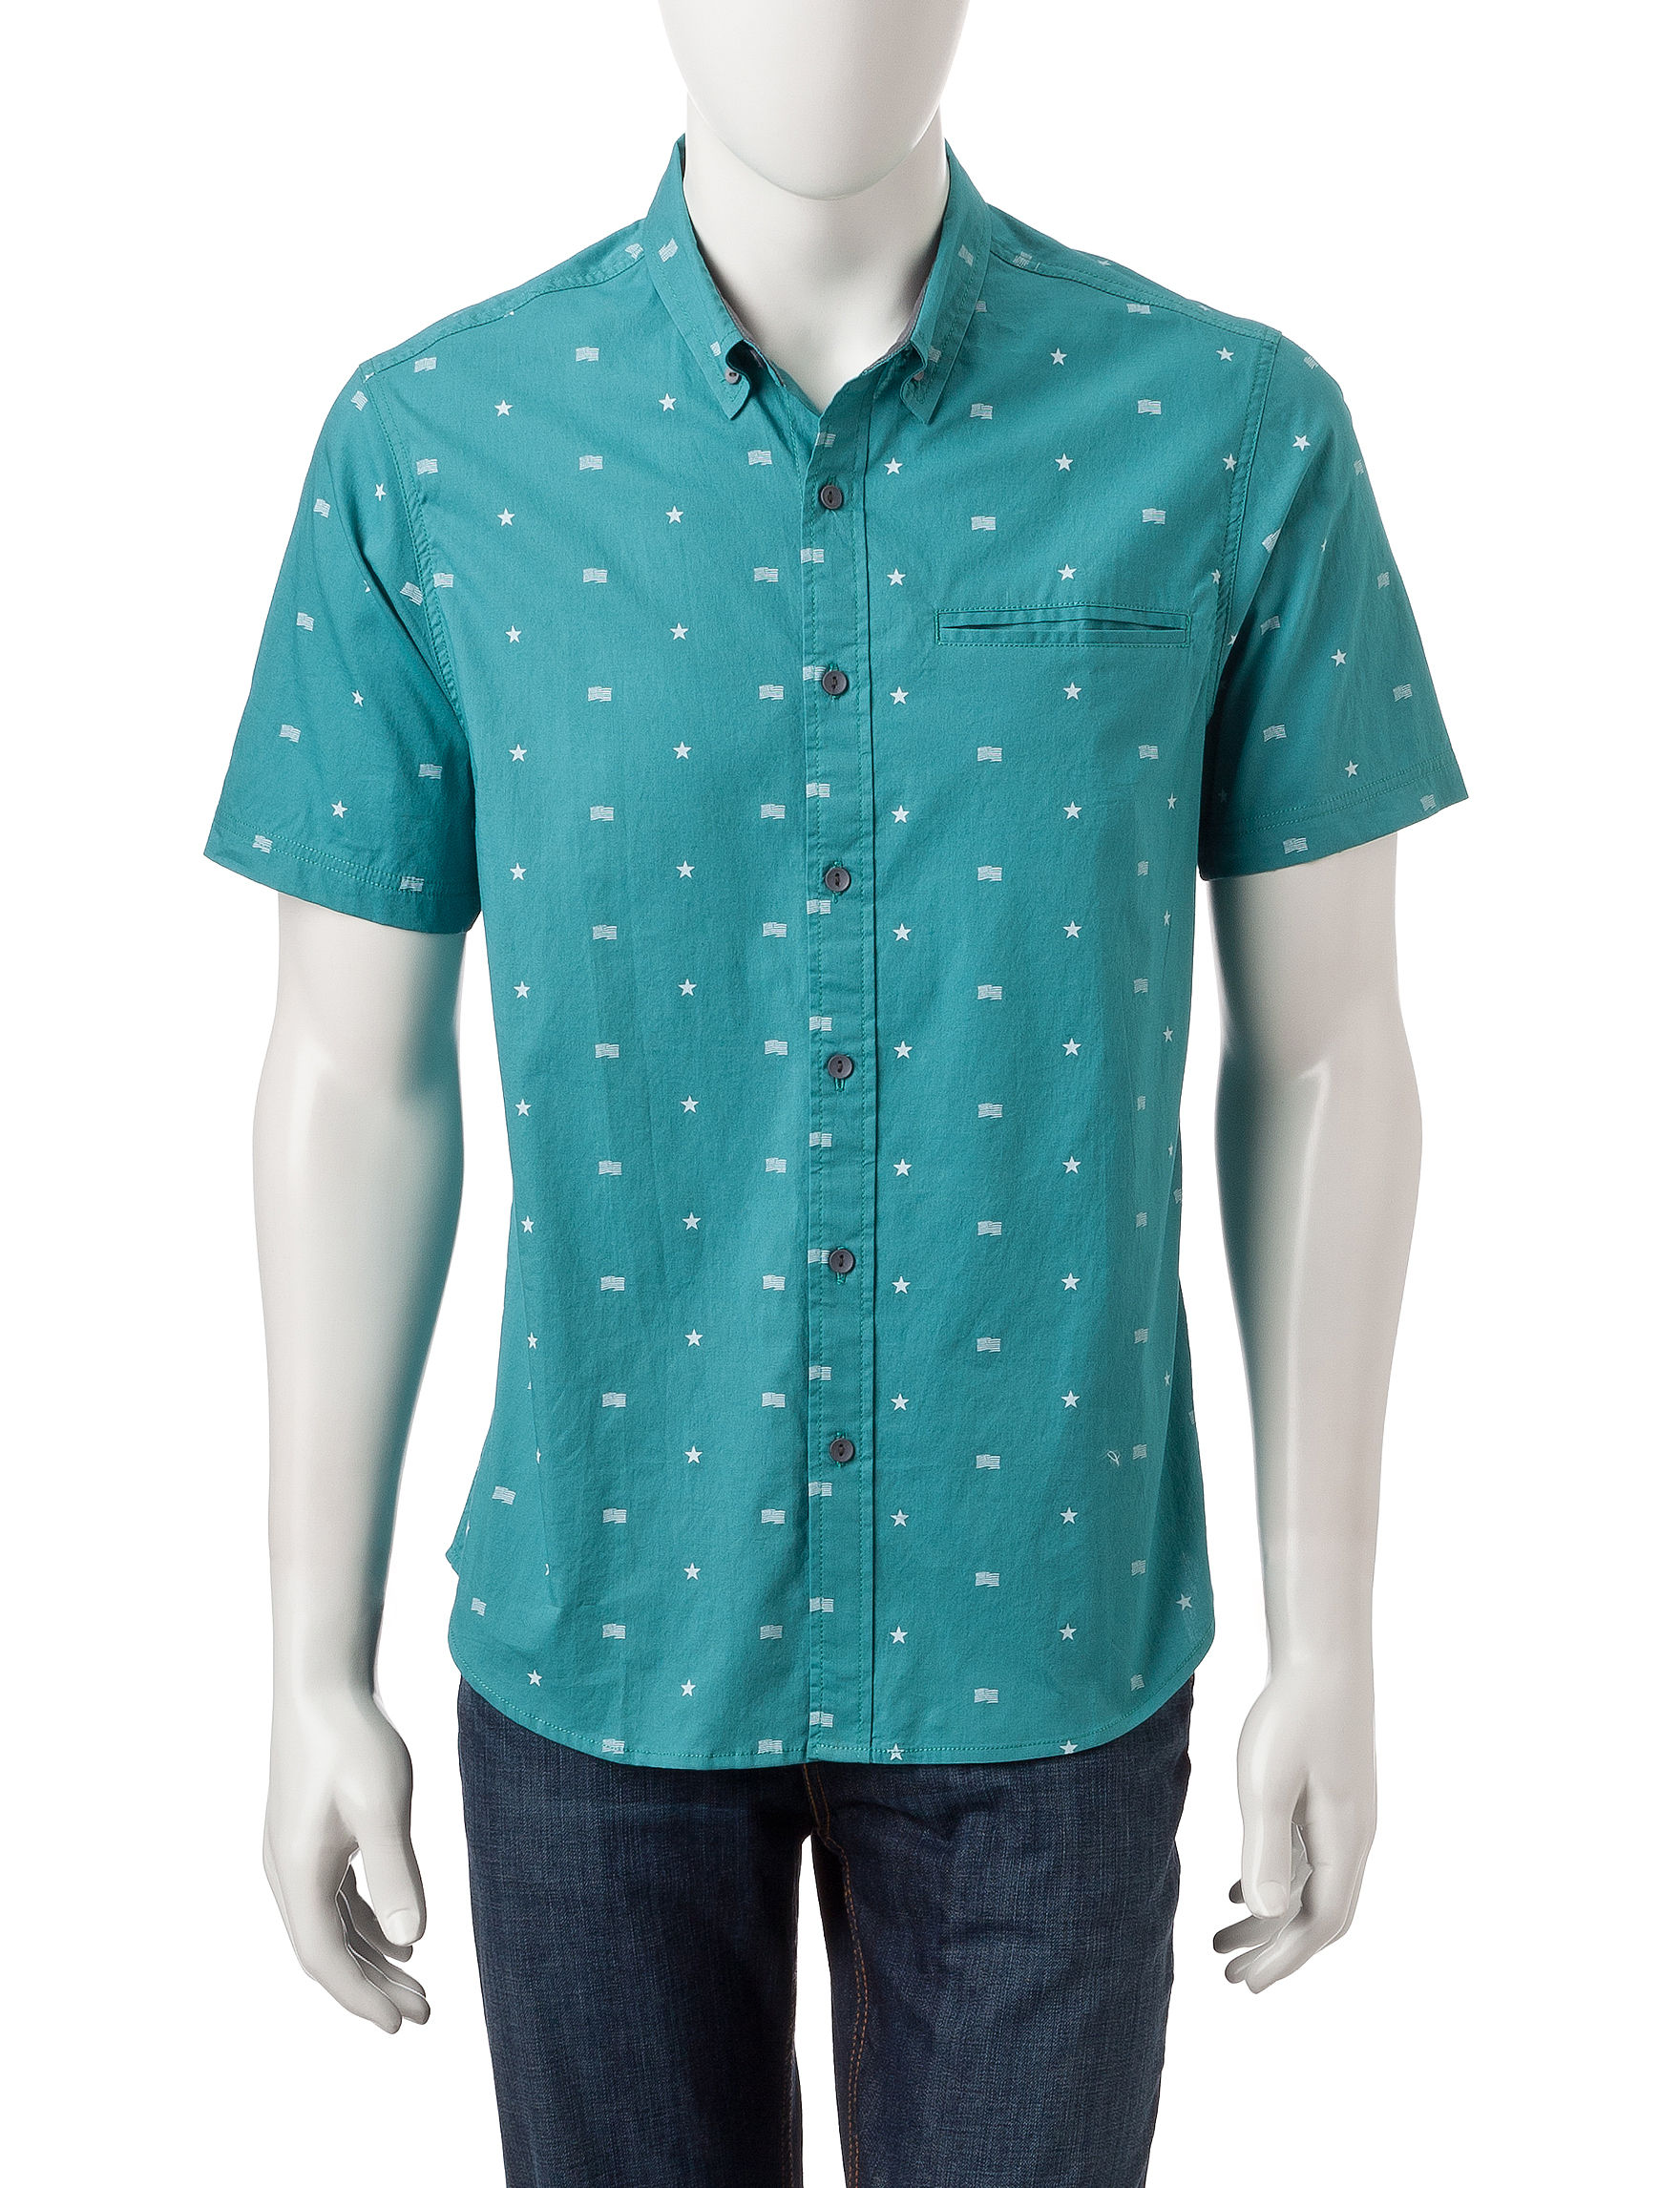 Rustic Blue Turquoise Casual Button Down Shirts